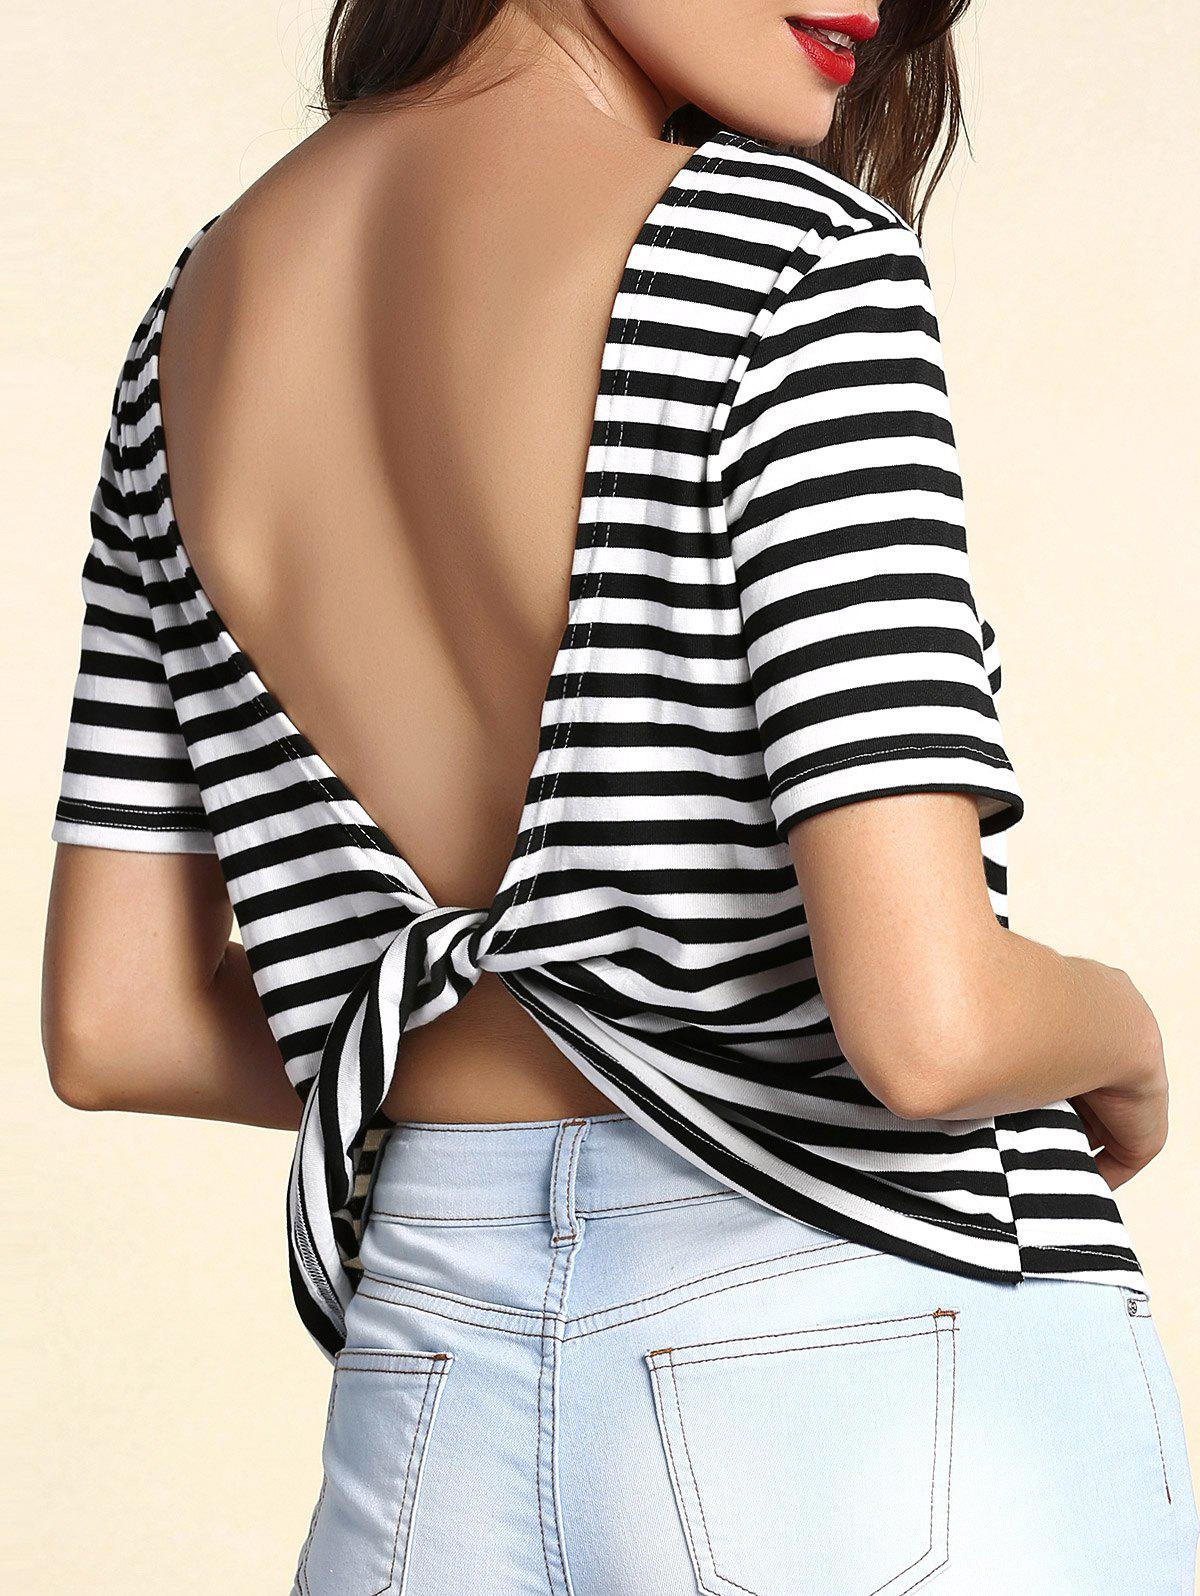 Trendy Striped Short Sleeve Backless Twist T-Shirt For Women - WHITE/BLACK XL